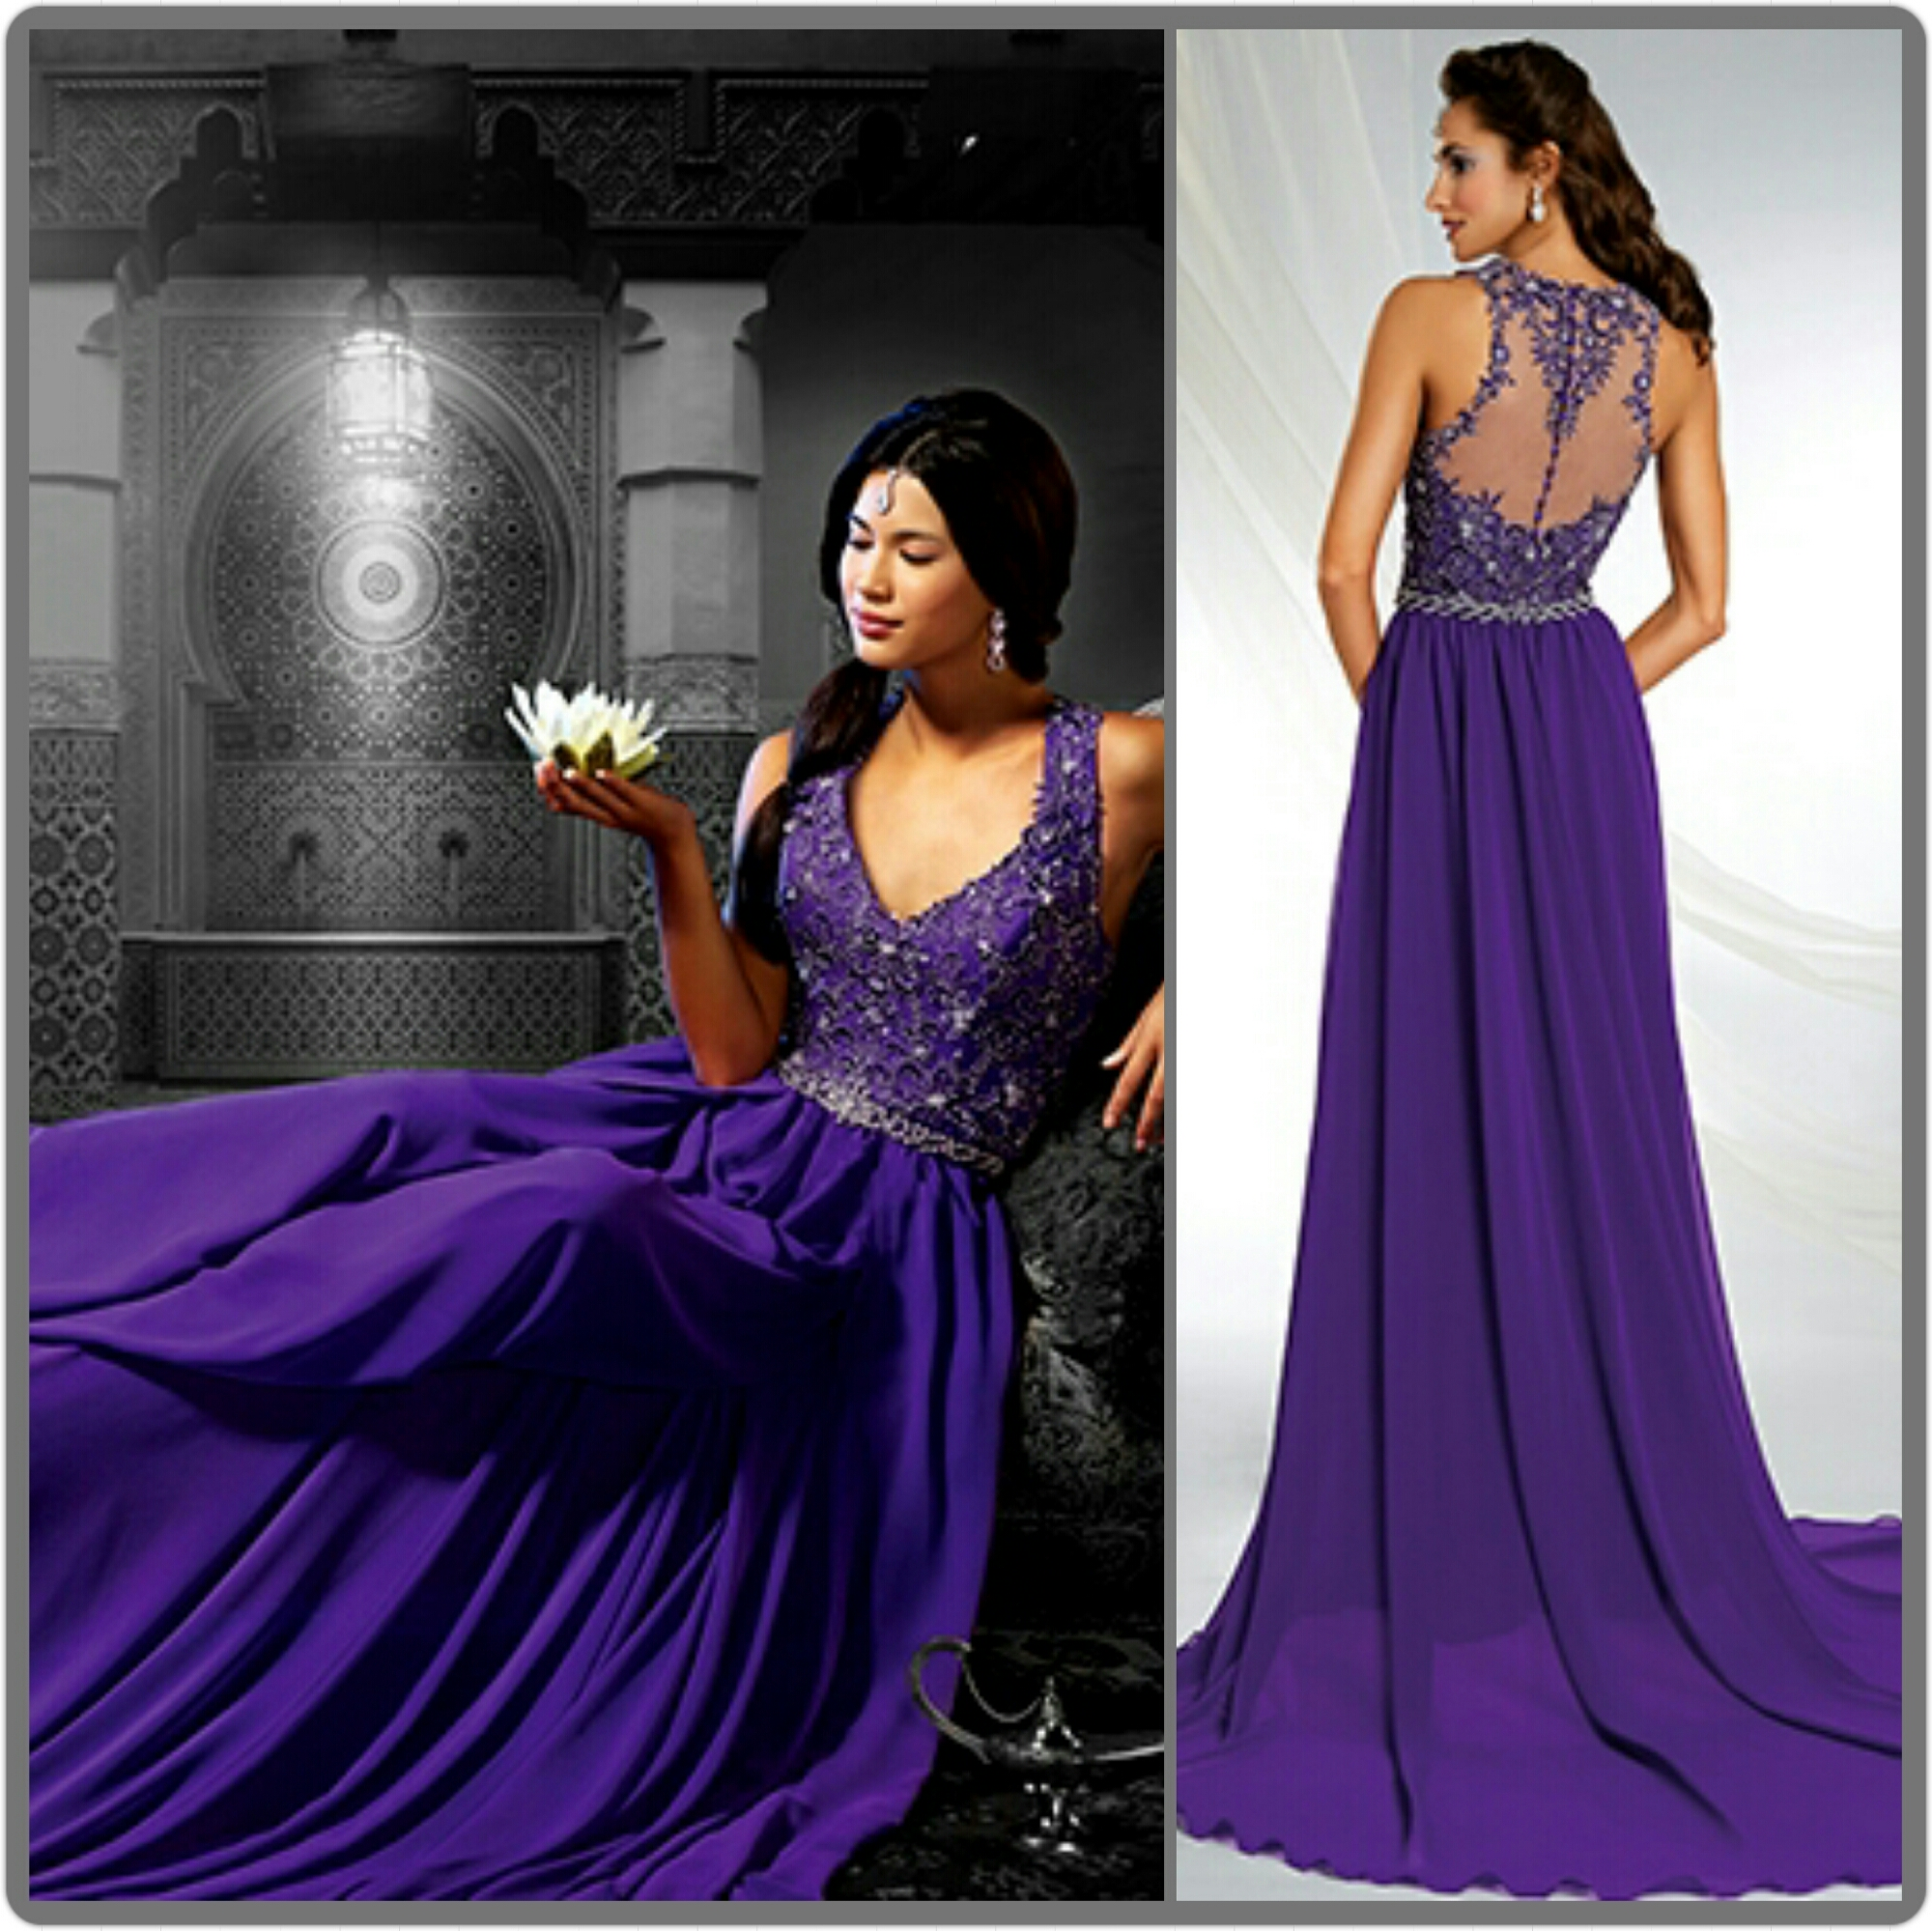 20 gorgeous wedding gowns in shades of purple purple dress for wedding Black Velvet Bodice Purple Satin Ballgown Wedding Dress Style Elegant and Sophisticated this beauty of a Ballgown will definitely be a